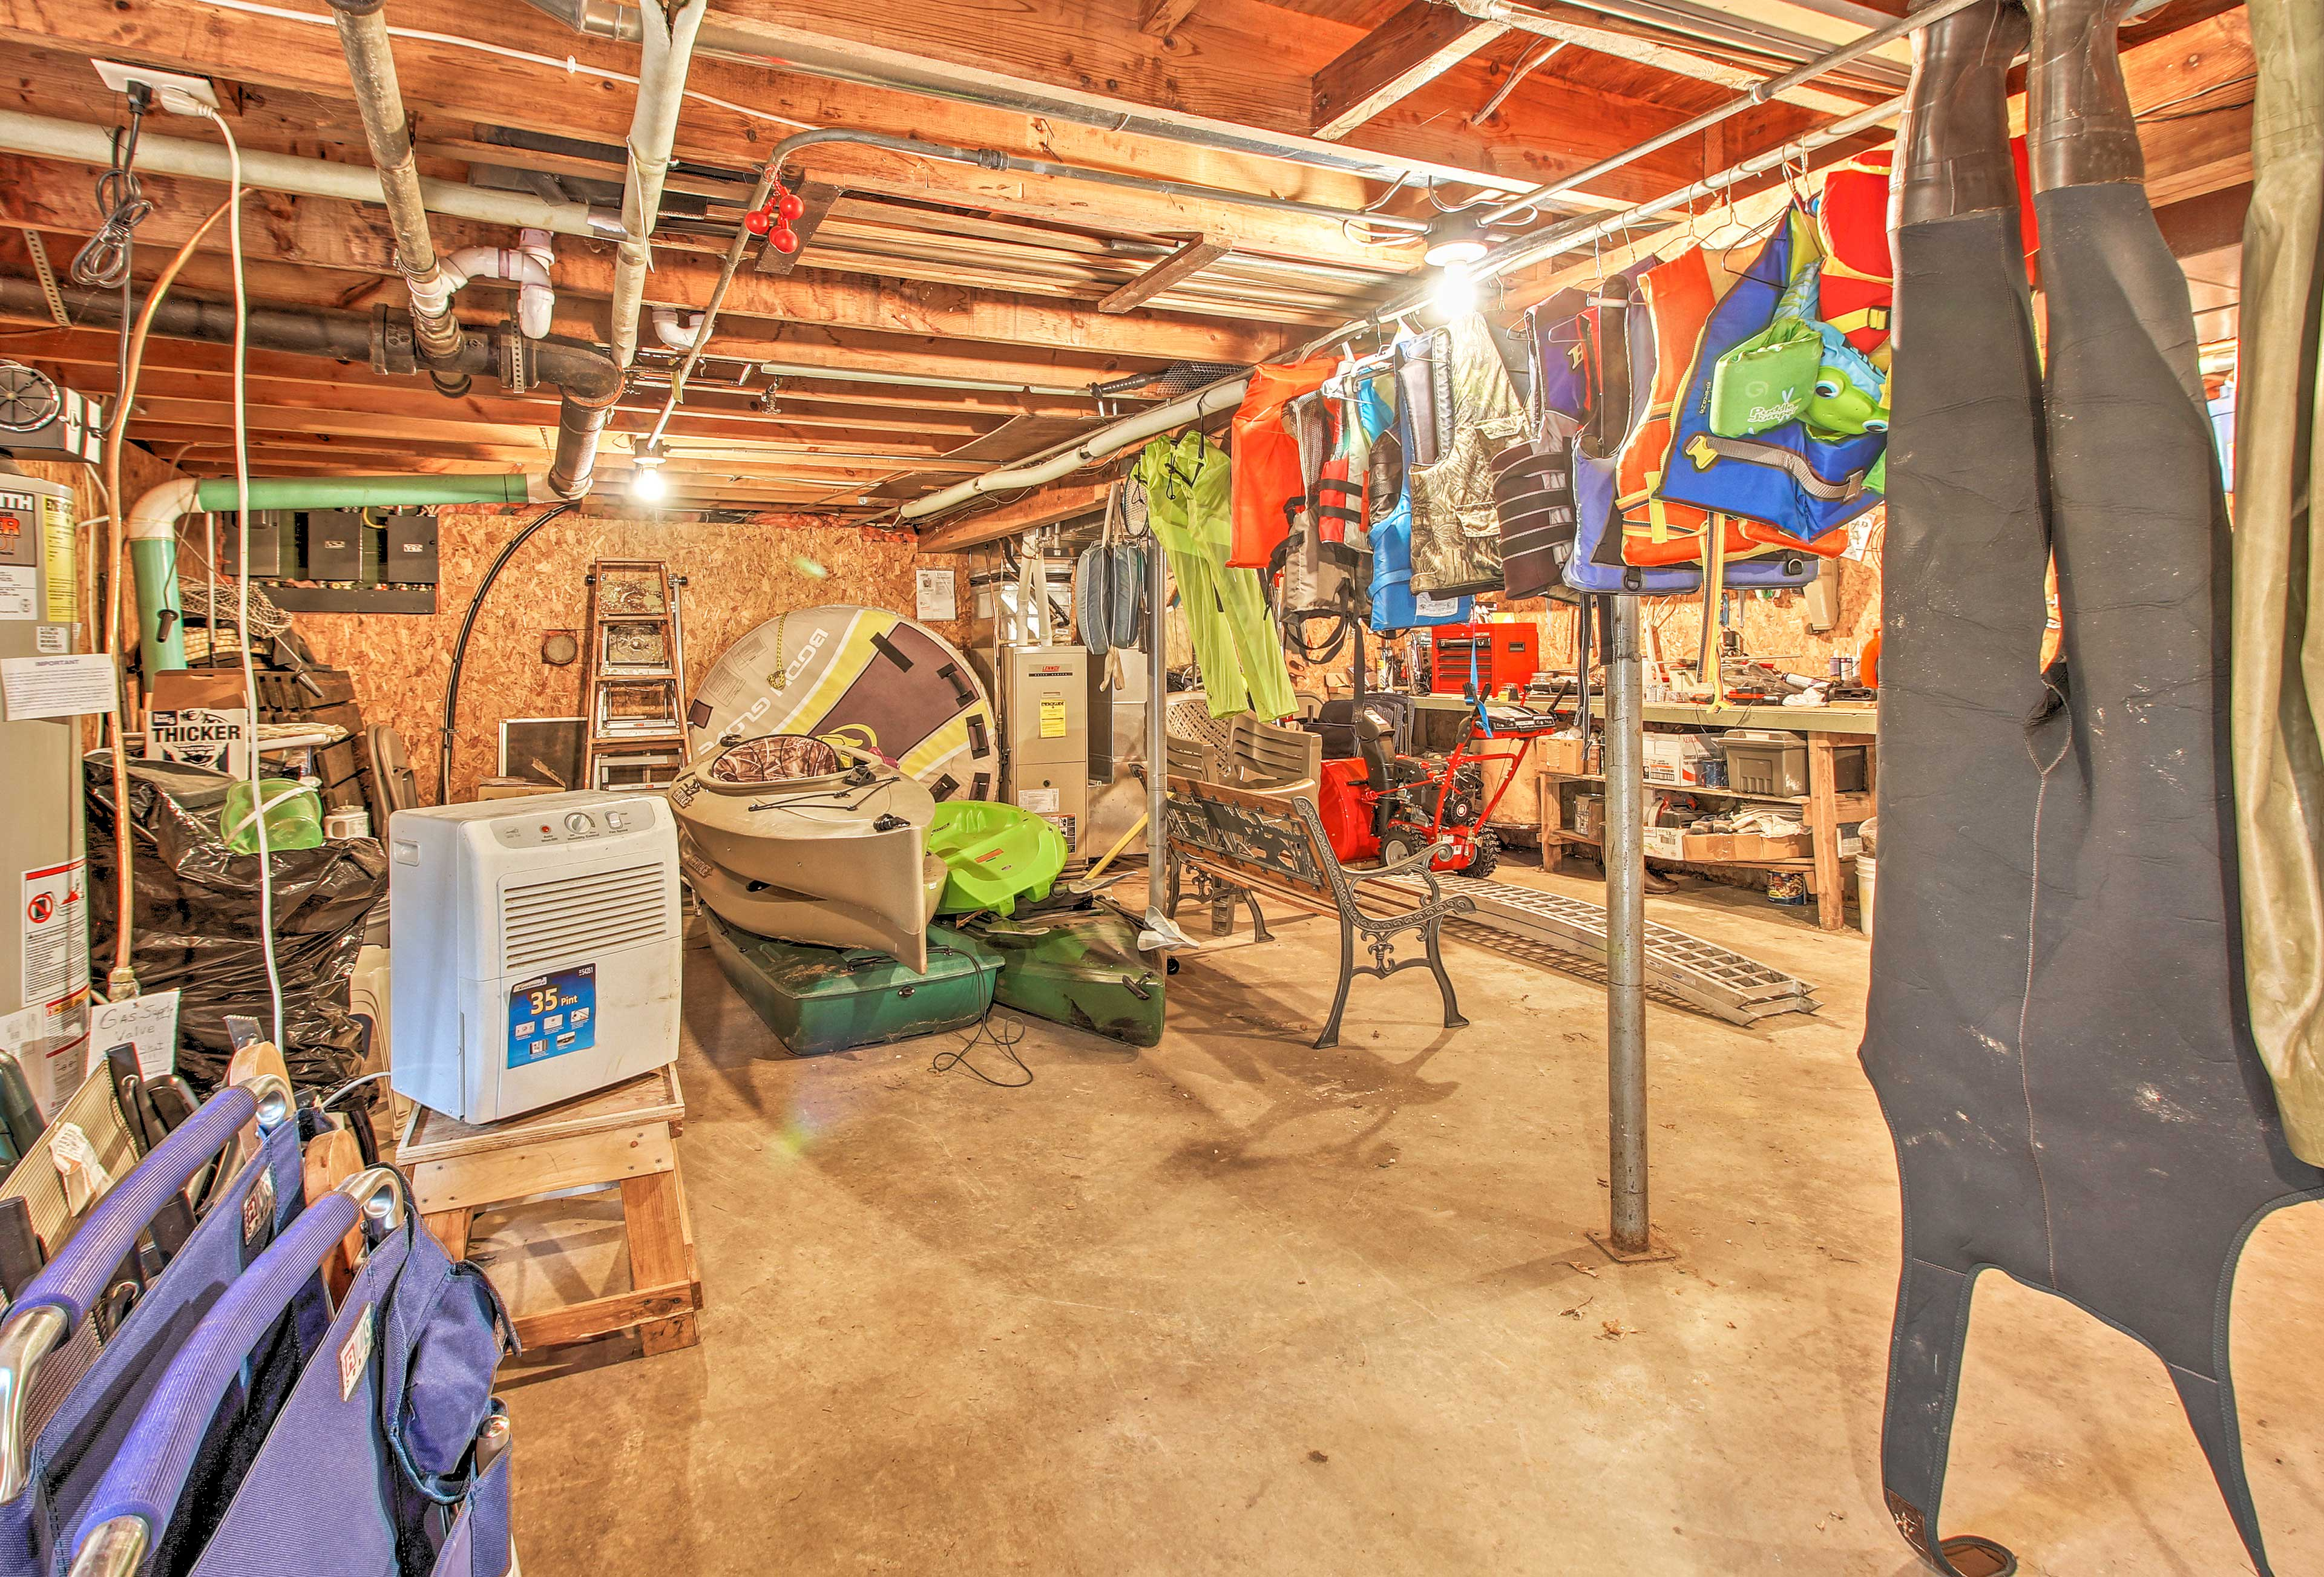 You'll have all the outdoor gear needed in the basement.